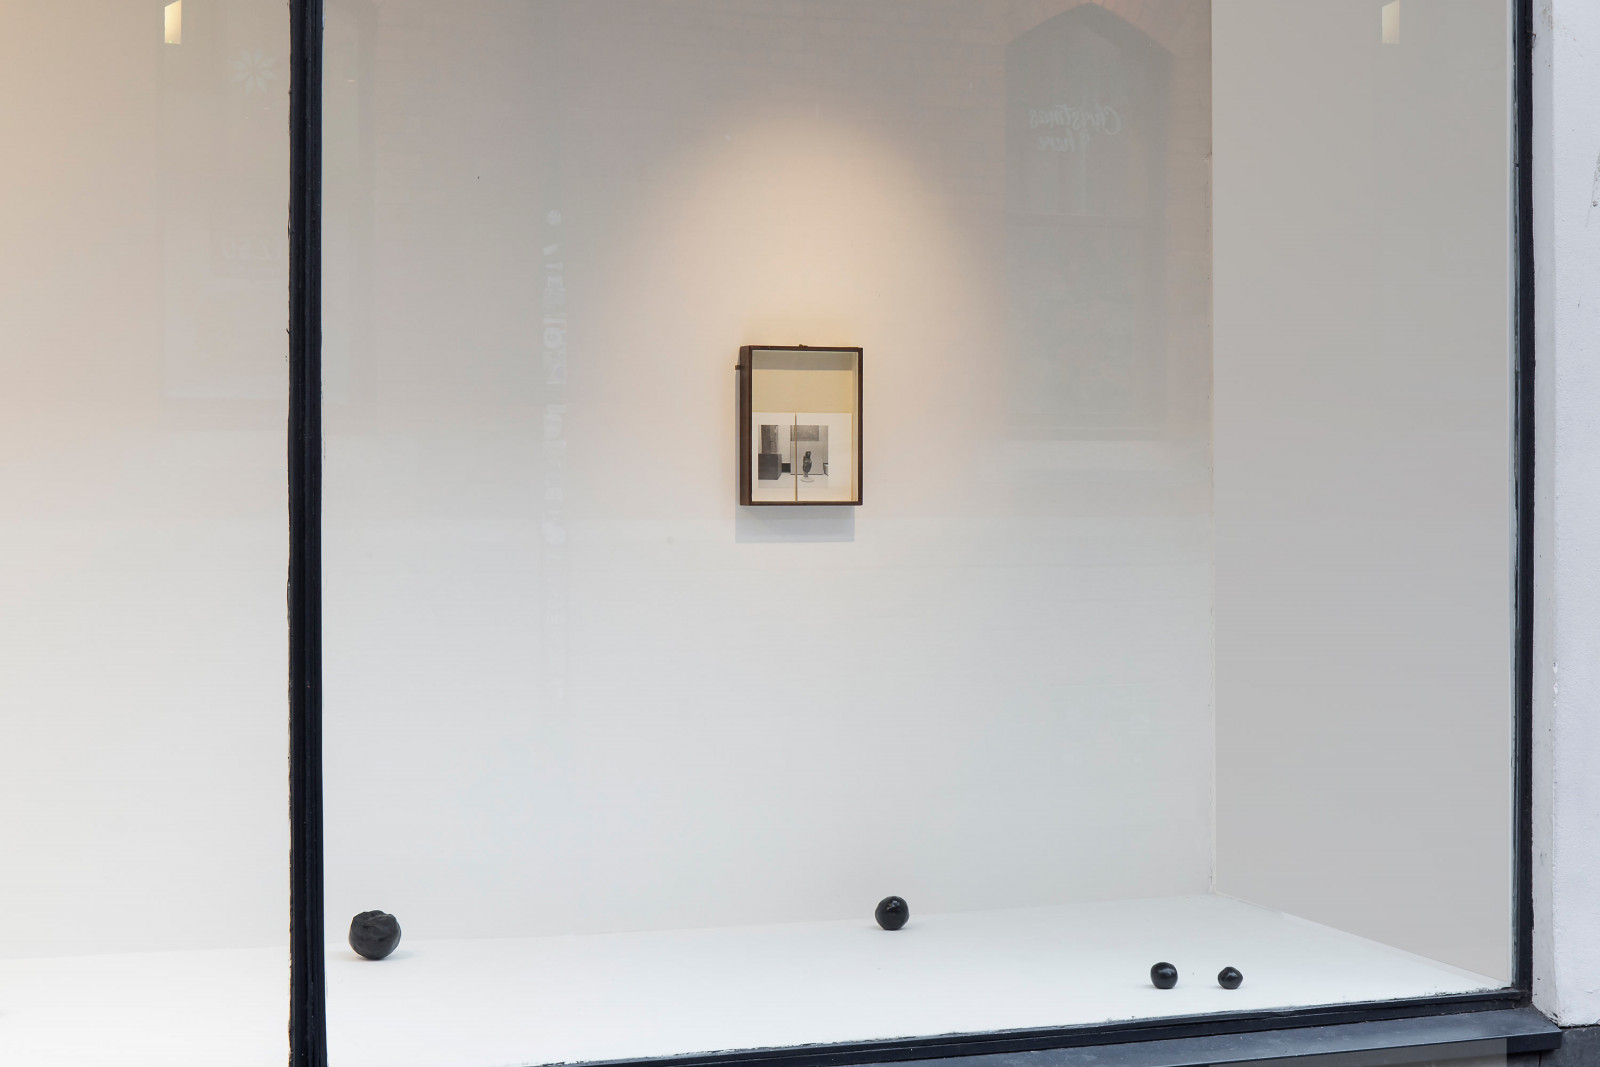 Temple Bar Gallery, Dublin, 2018 (solo). Curated by Cliodhna Shaffrey and Michael Hill. Photo: Kasia Kaminska